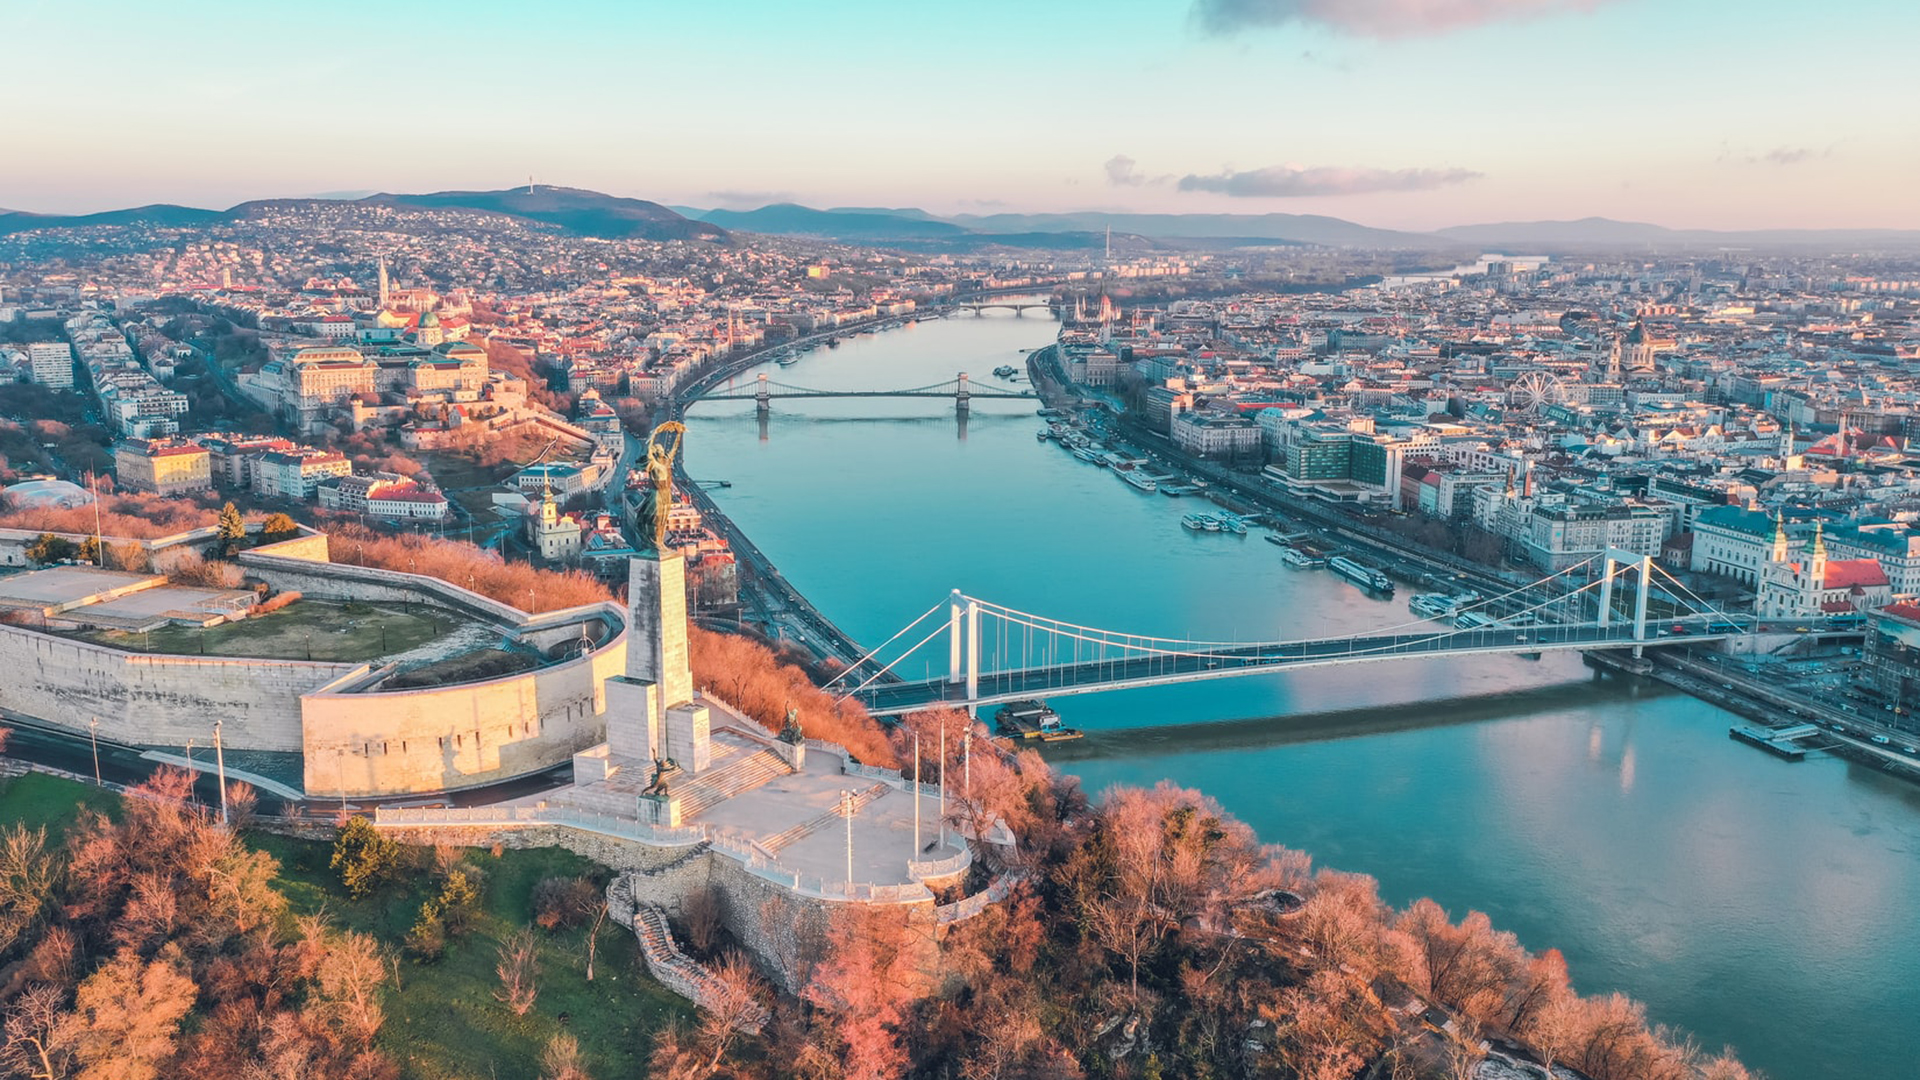 First-ever Founder Institute Hungary Startup Accelerator Opens Applications. Let's build the future.